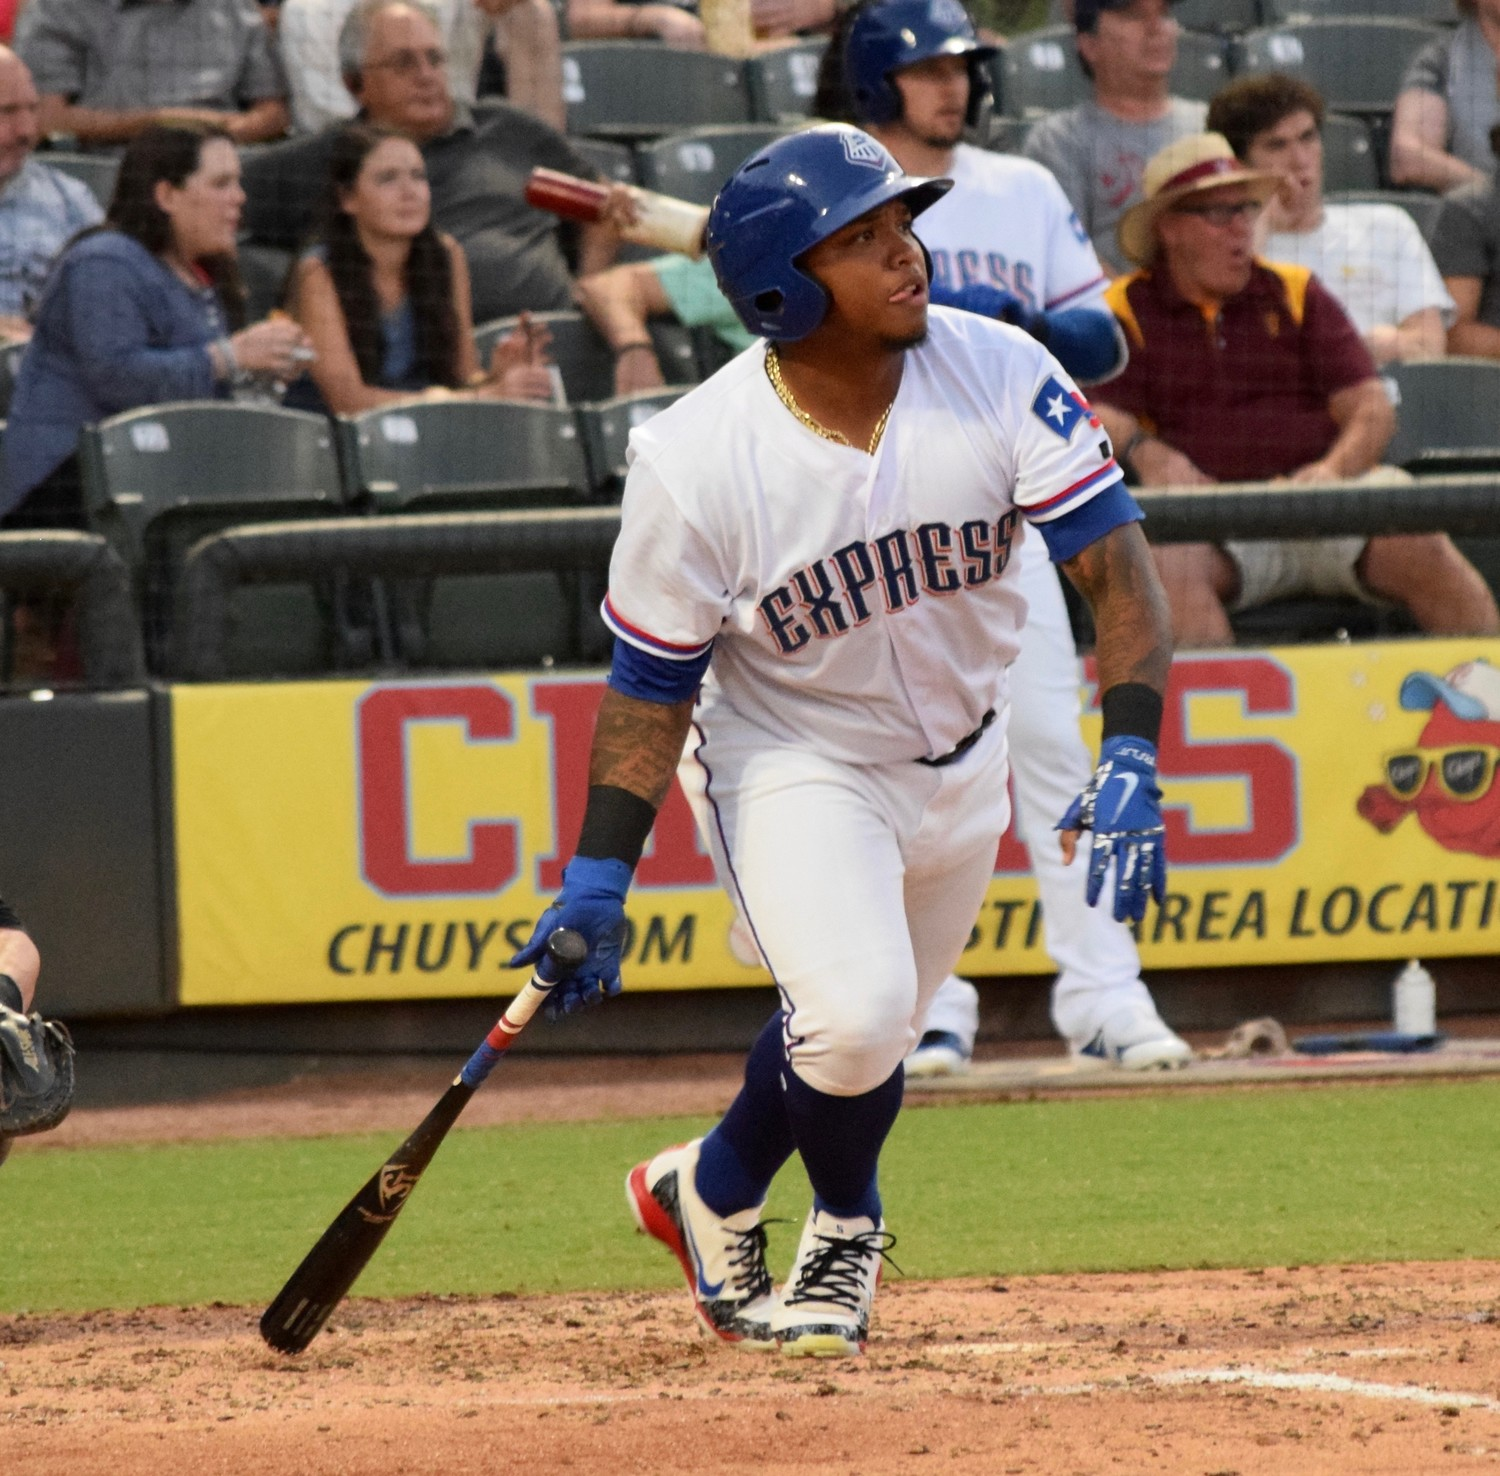 Willie Calhoun finished with three hits and two RBIs, but the Round Rock Express lost to the Sacramento River Cats 7-5 on Wednesday night.